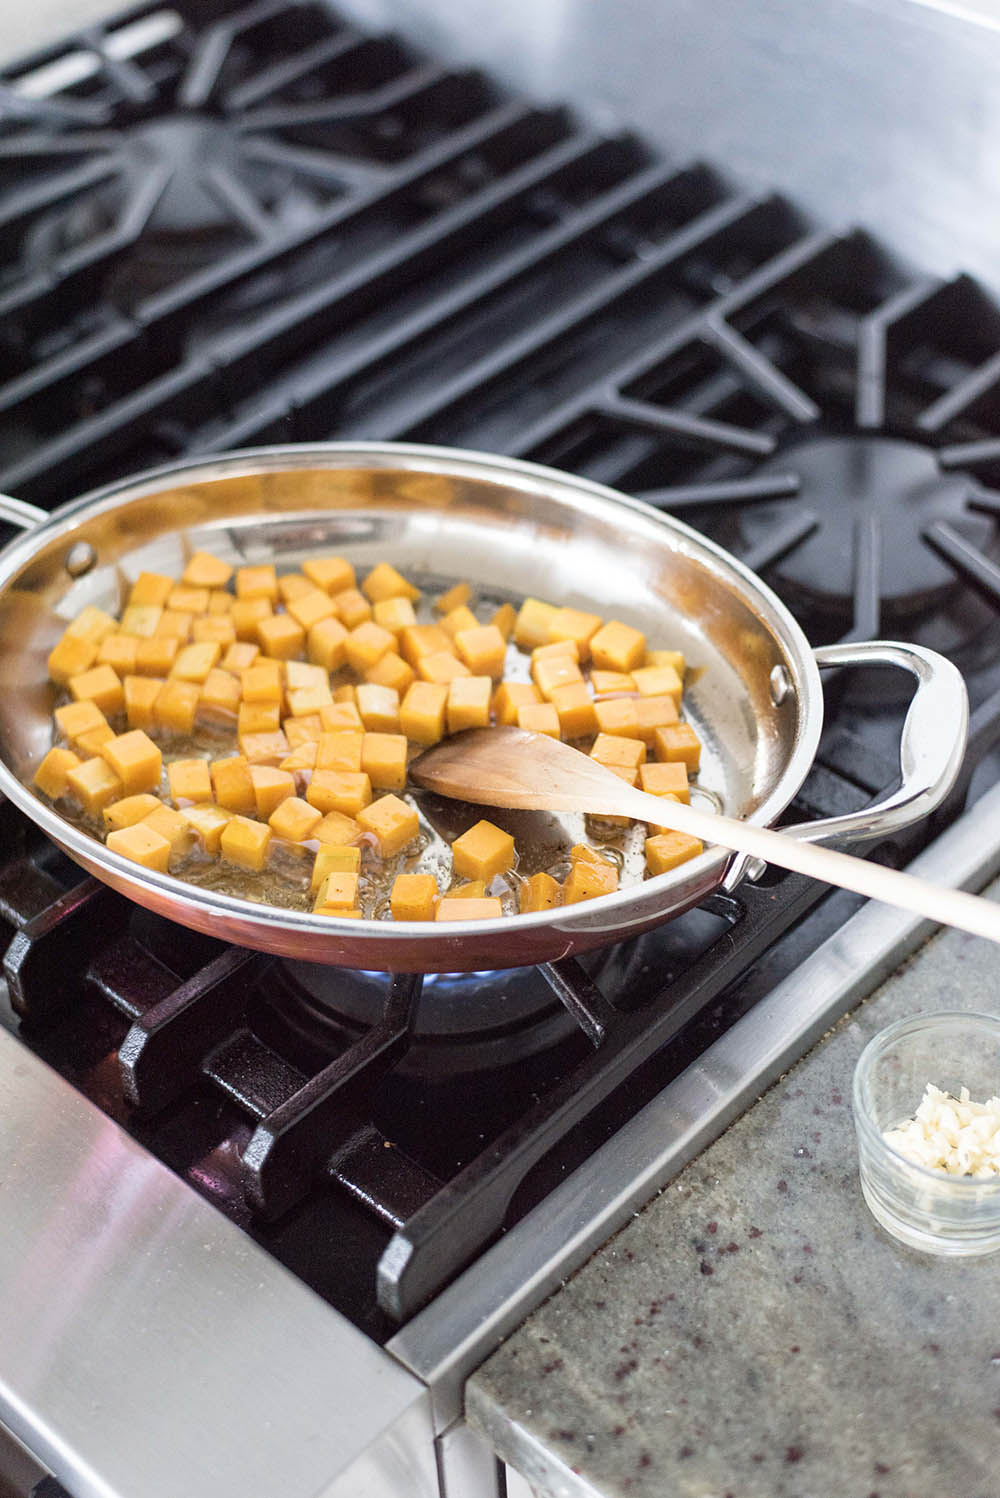 Diced butternut squash cooking on a stove.